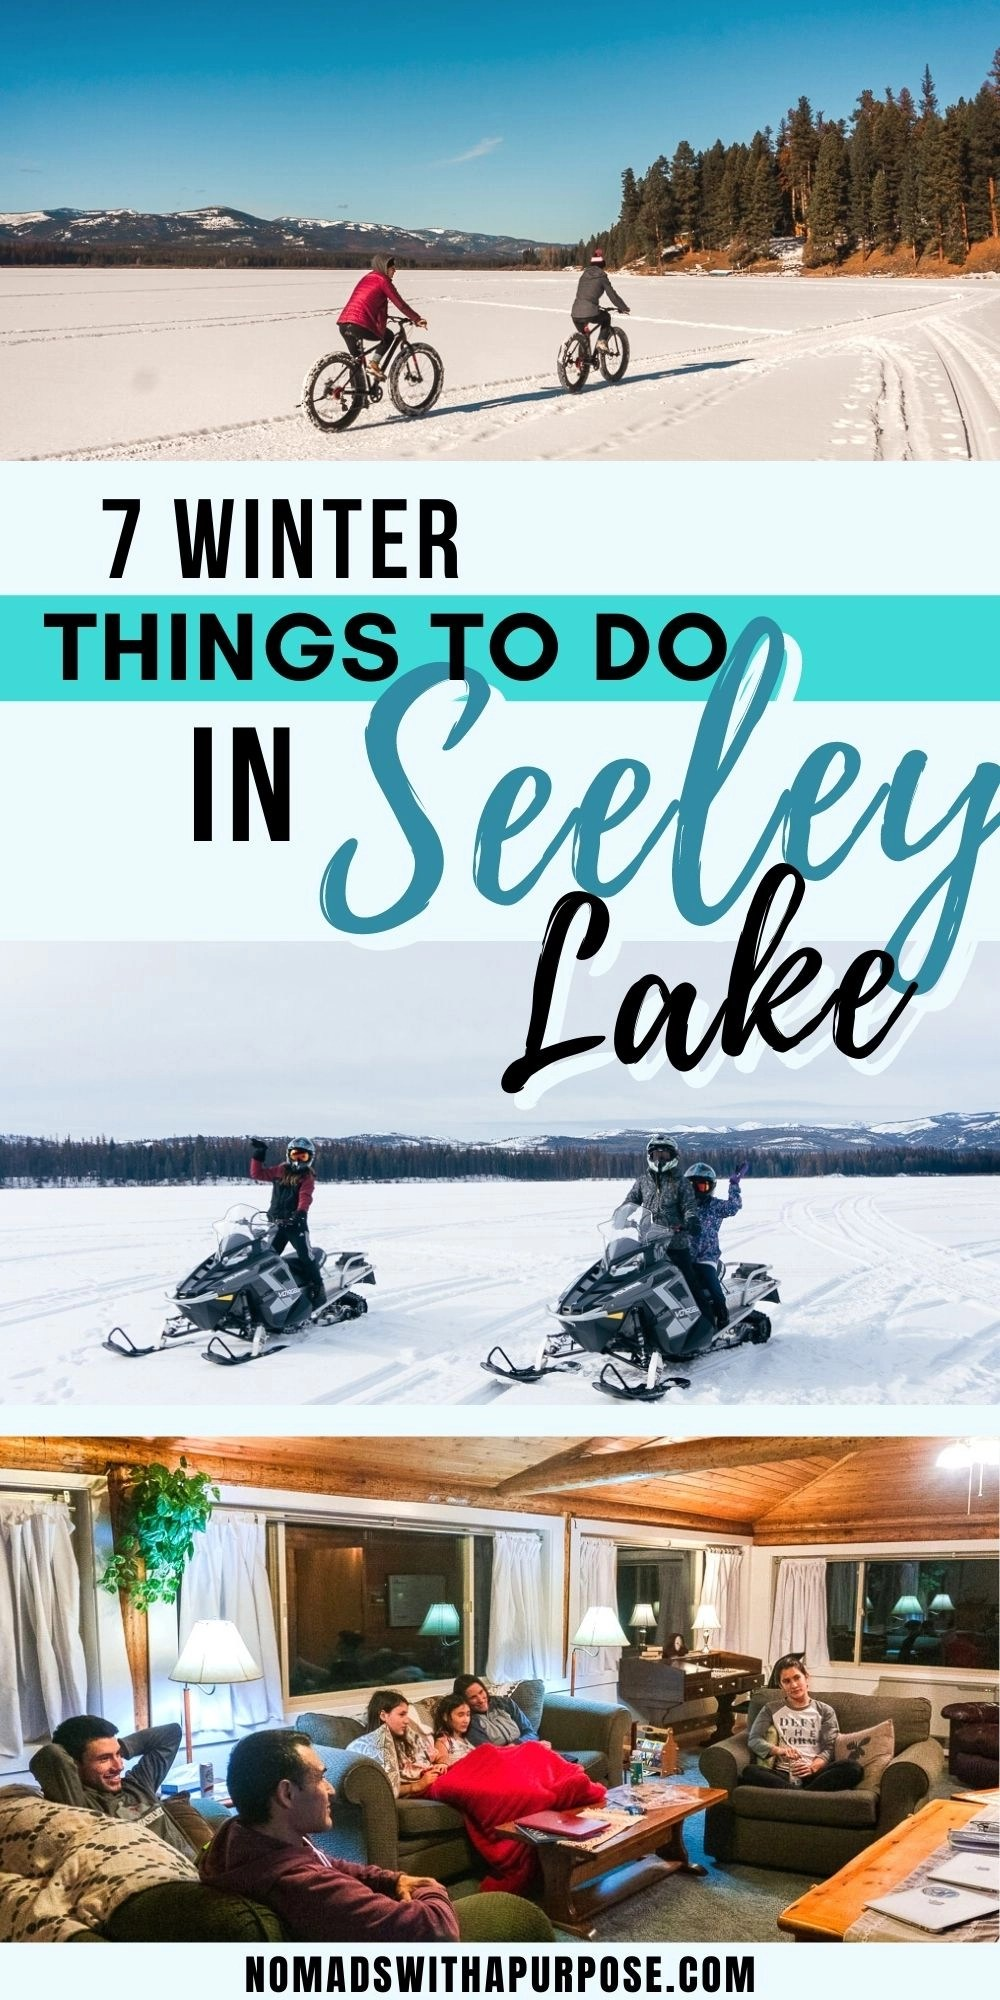 7 Winter Things to Do in Seeley Lake Montana